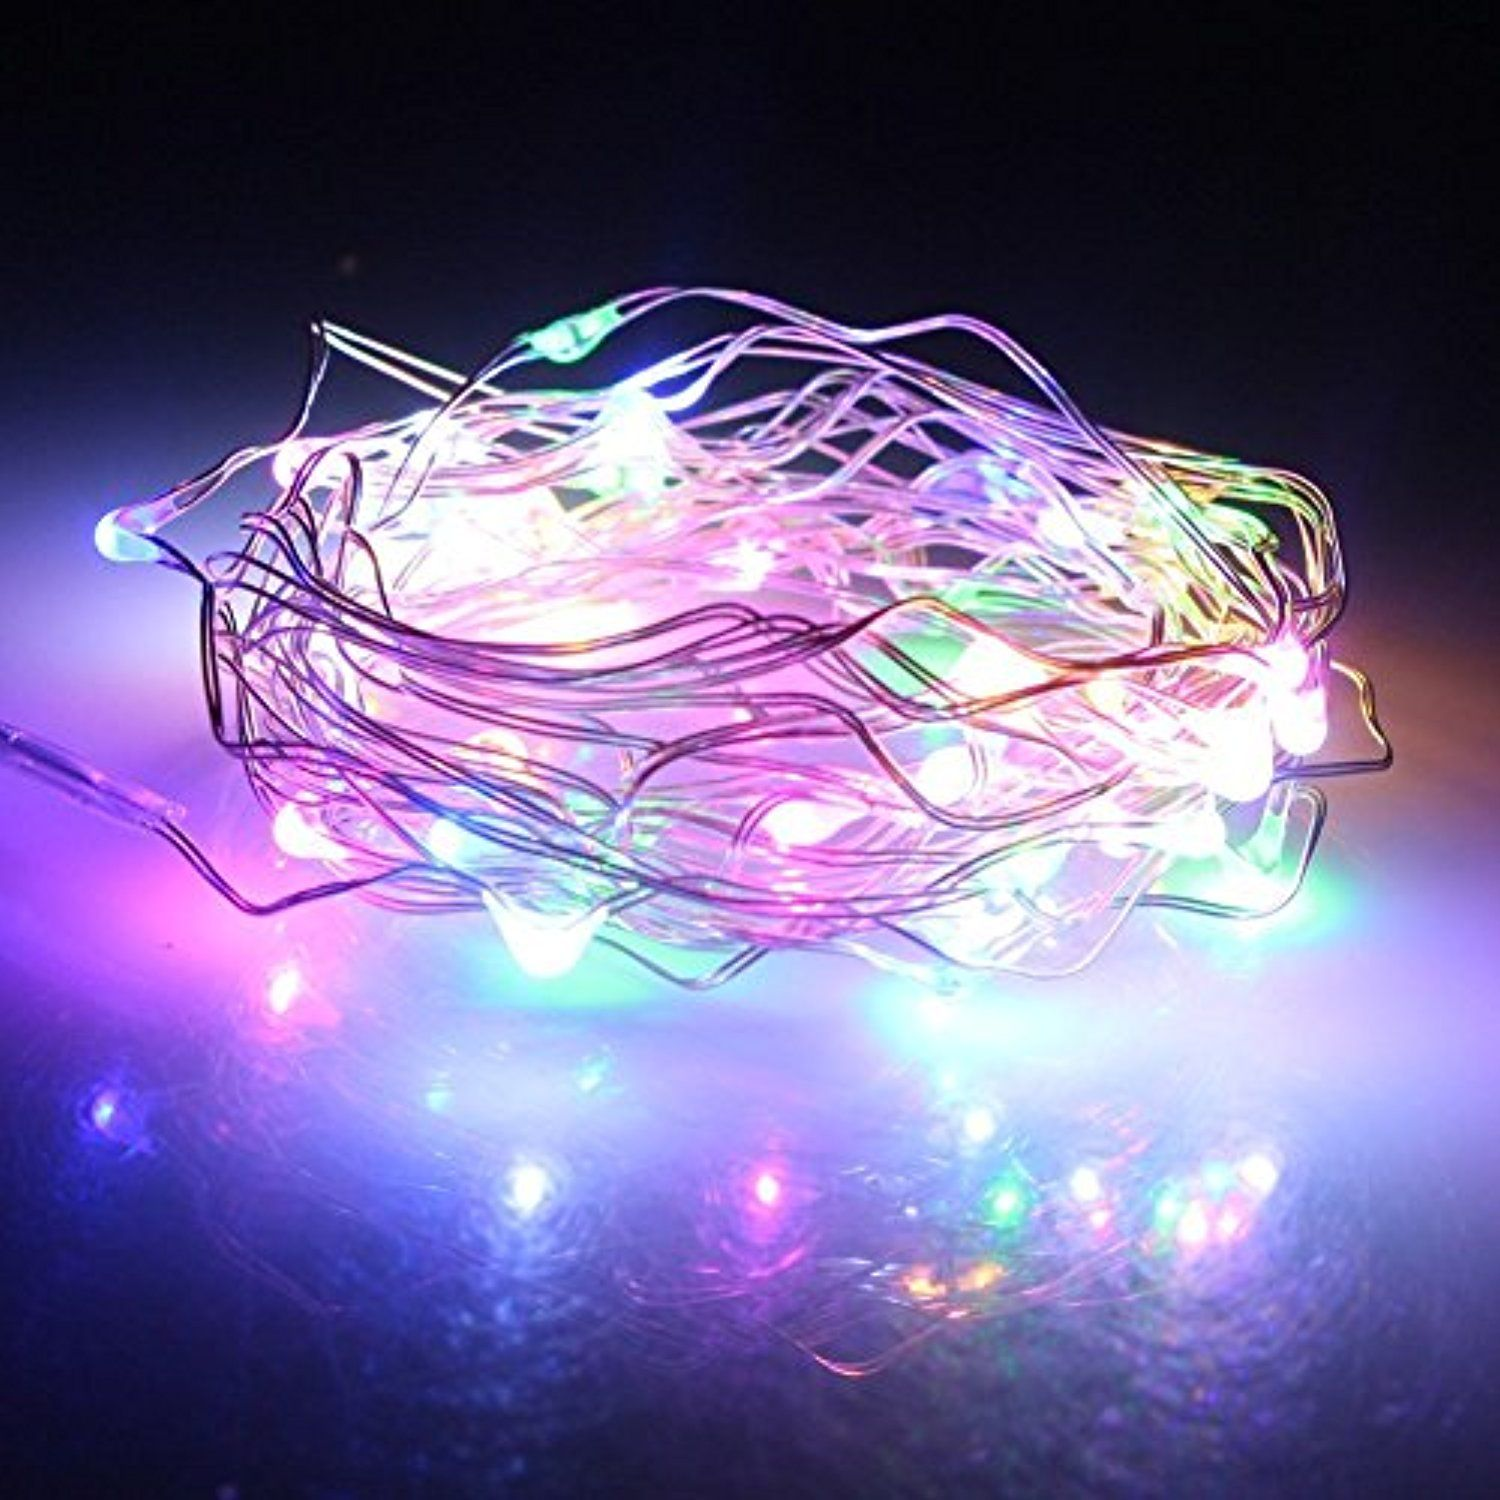 Multi Colored Starry Fairy Lights Copper Led Lights Strings Battery Powered 5m 50le Outdoor Christmas Lights Halloween Outdoor Decorations Led Christmas Lights